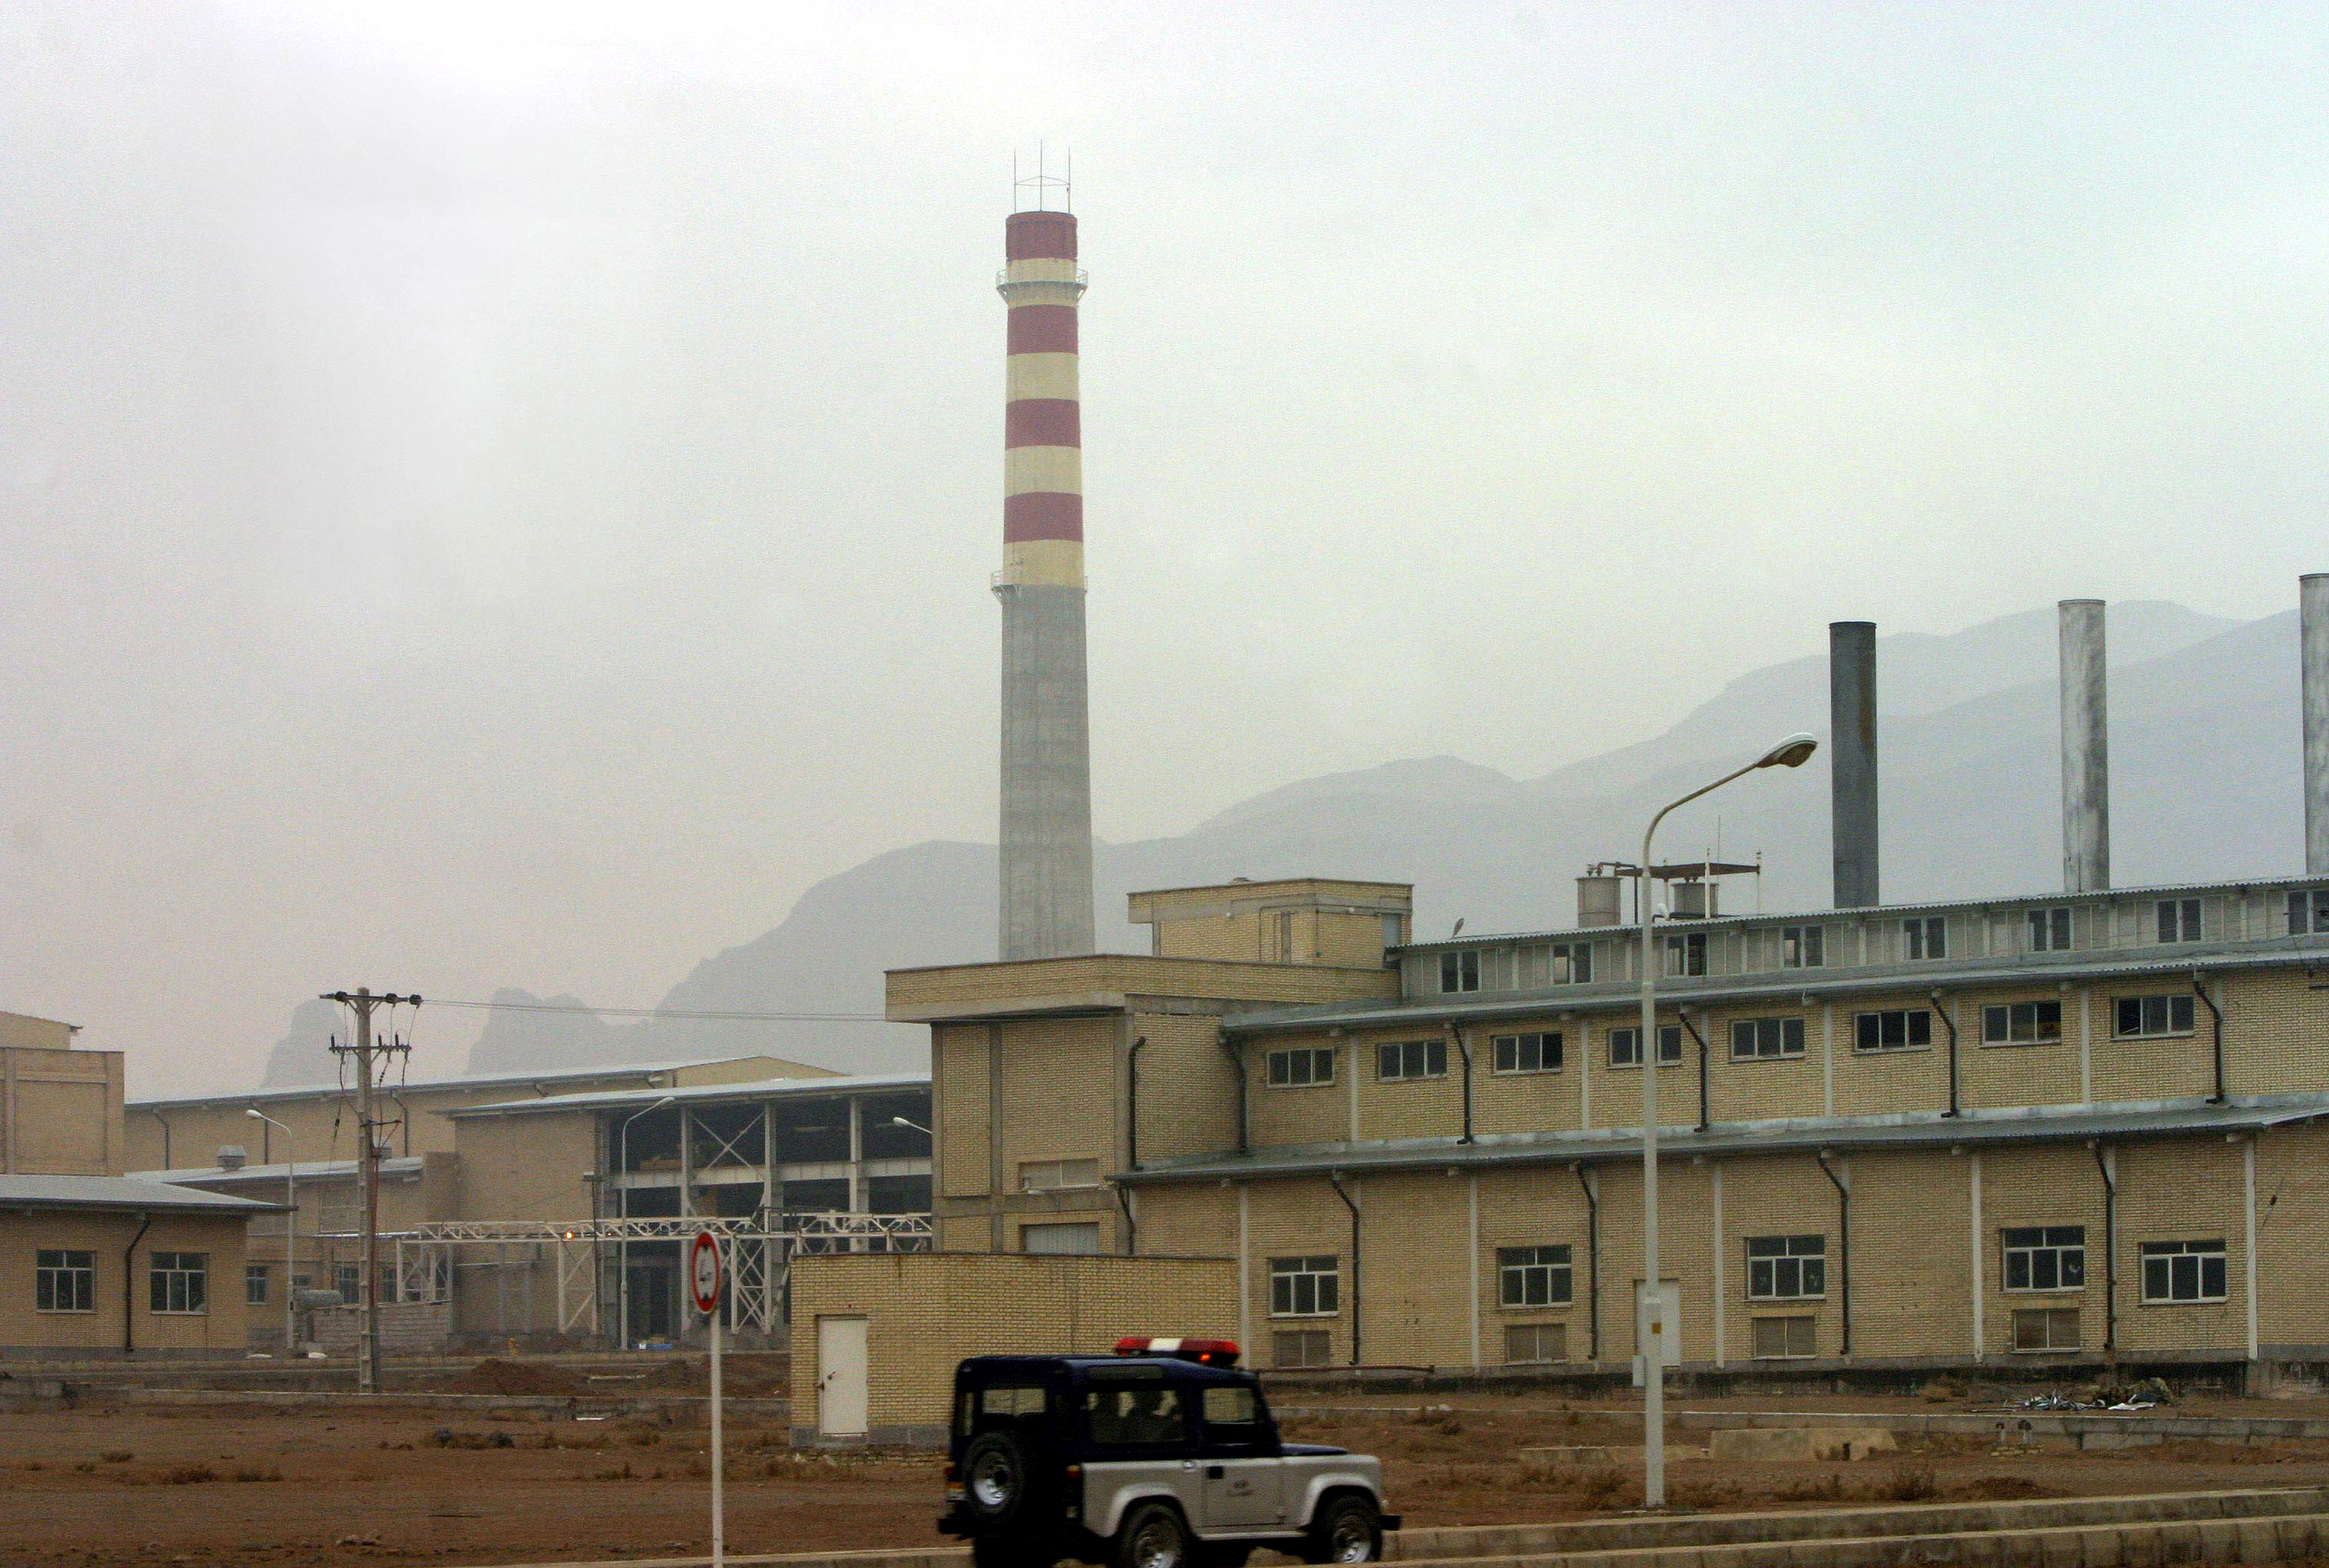 A security car passes in front of the Natanz nuclear facility, 300 km south of Tehrah, Iran on Nov. 20, 2004.